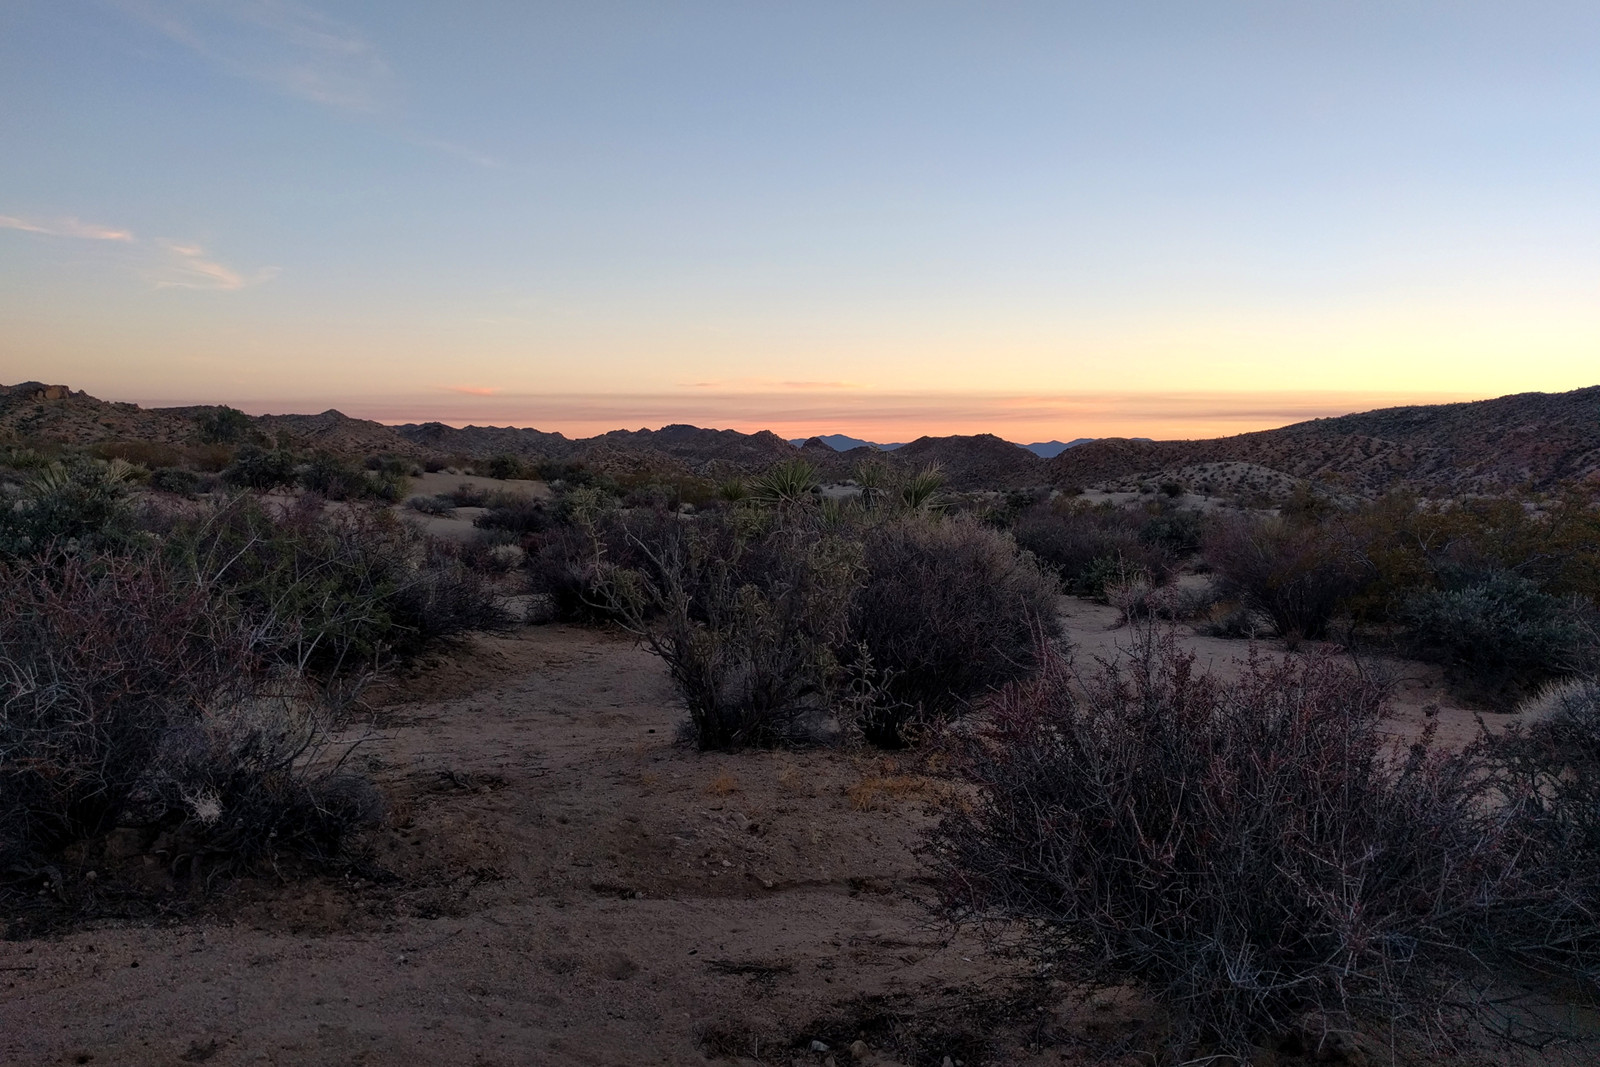 The view from our campsite at Cottonwood Campground in Joshua Tree National Park at sunset